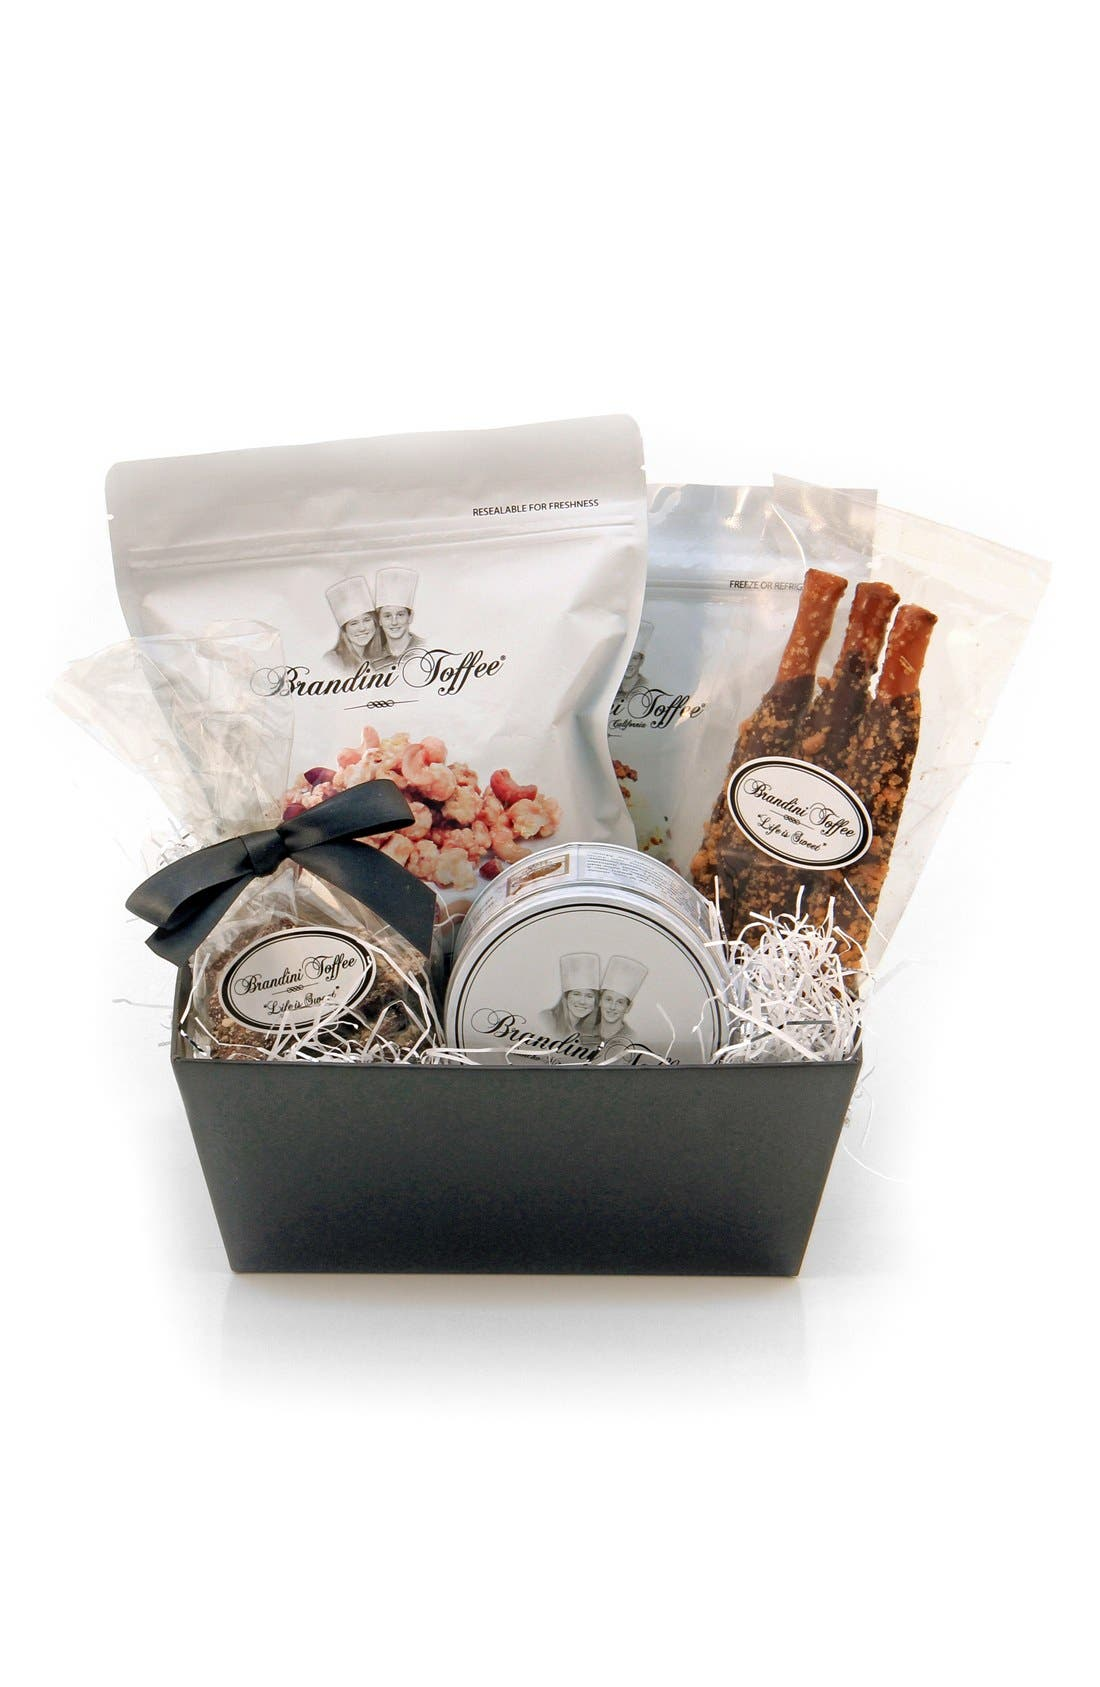 Alternate Image 1 Selected - Brandini Toffee Small Gift Basket